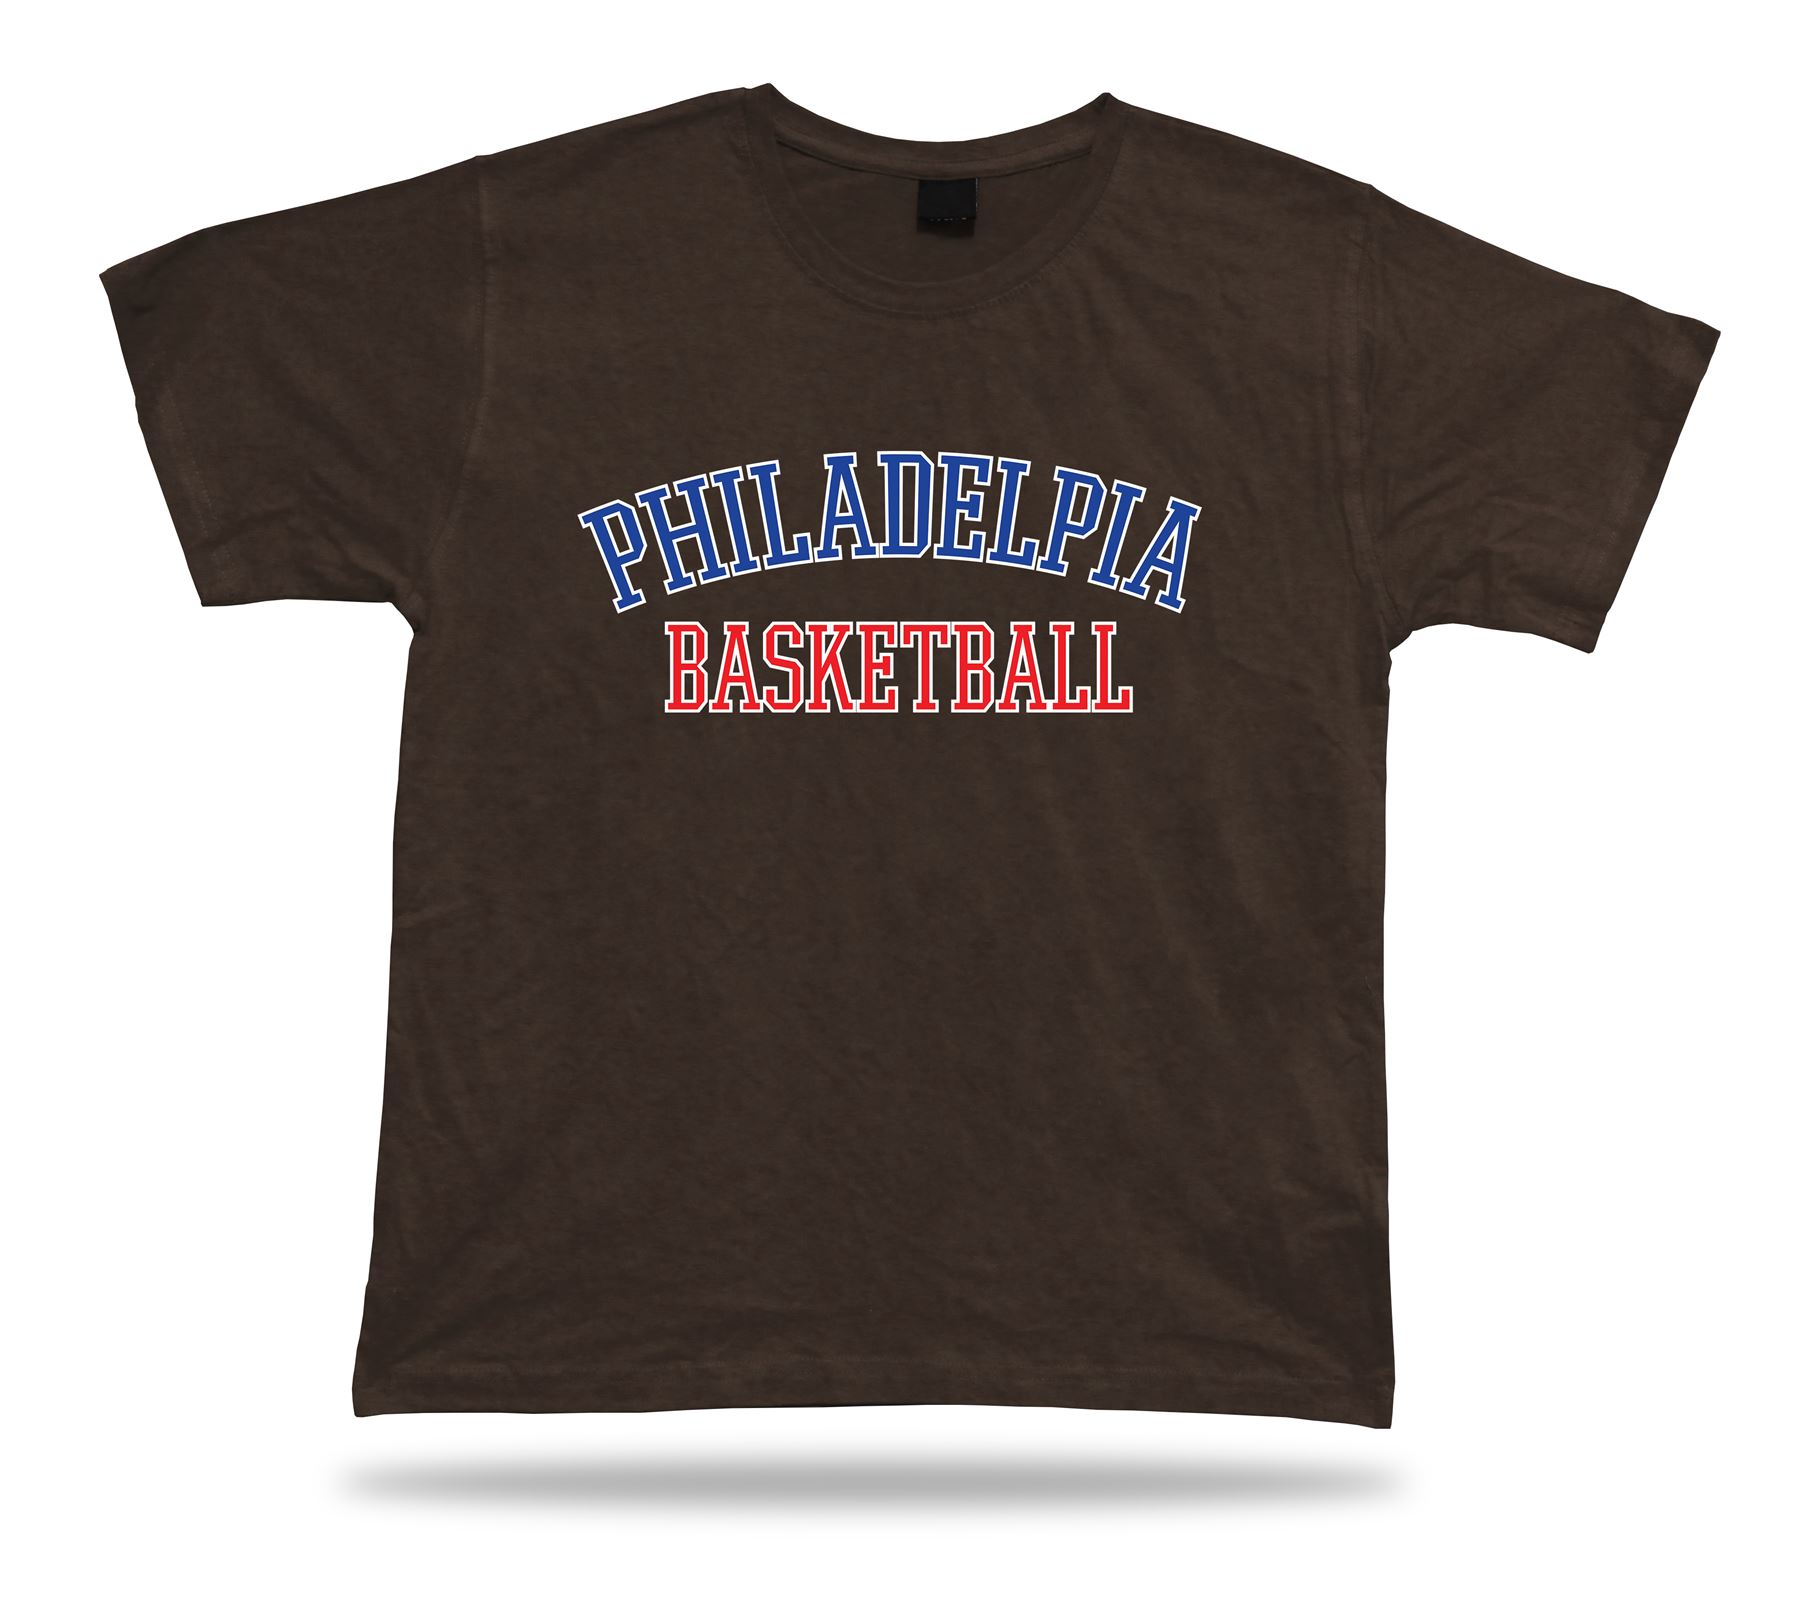 Philadelphia Usa Basketball T Shirt Tee Warm Up Style